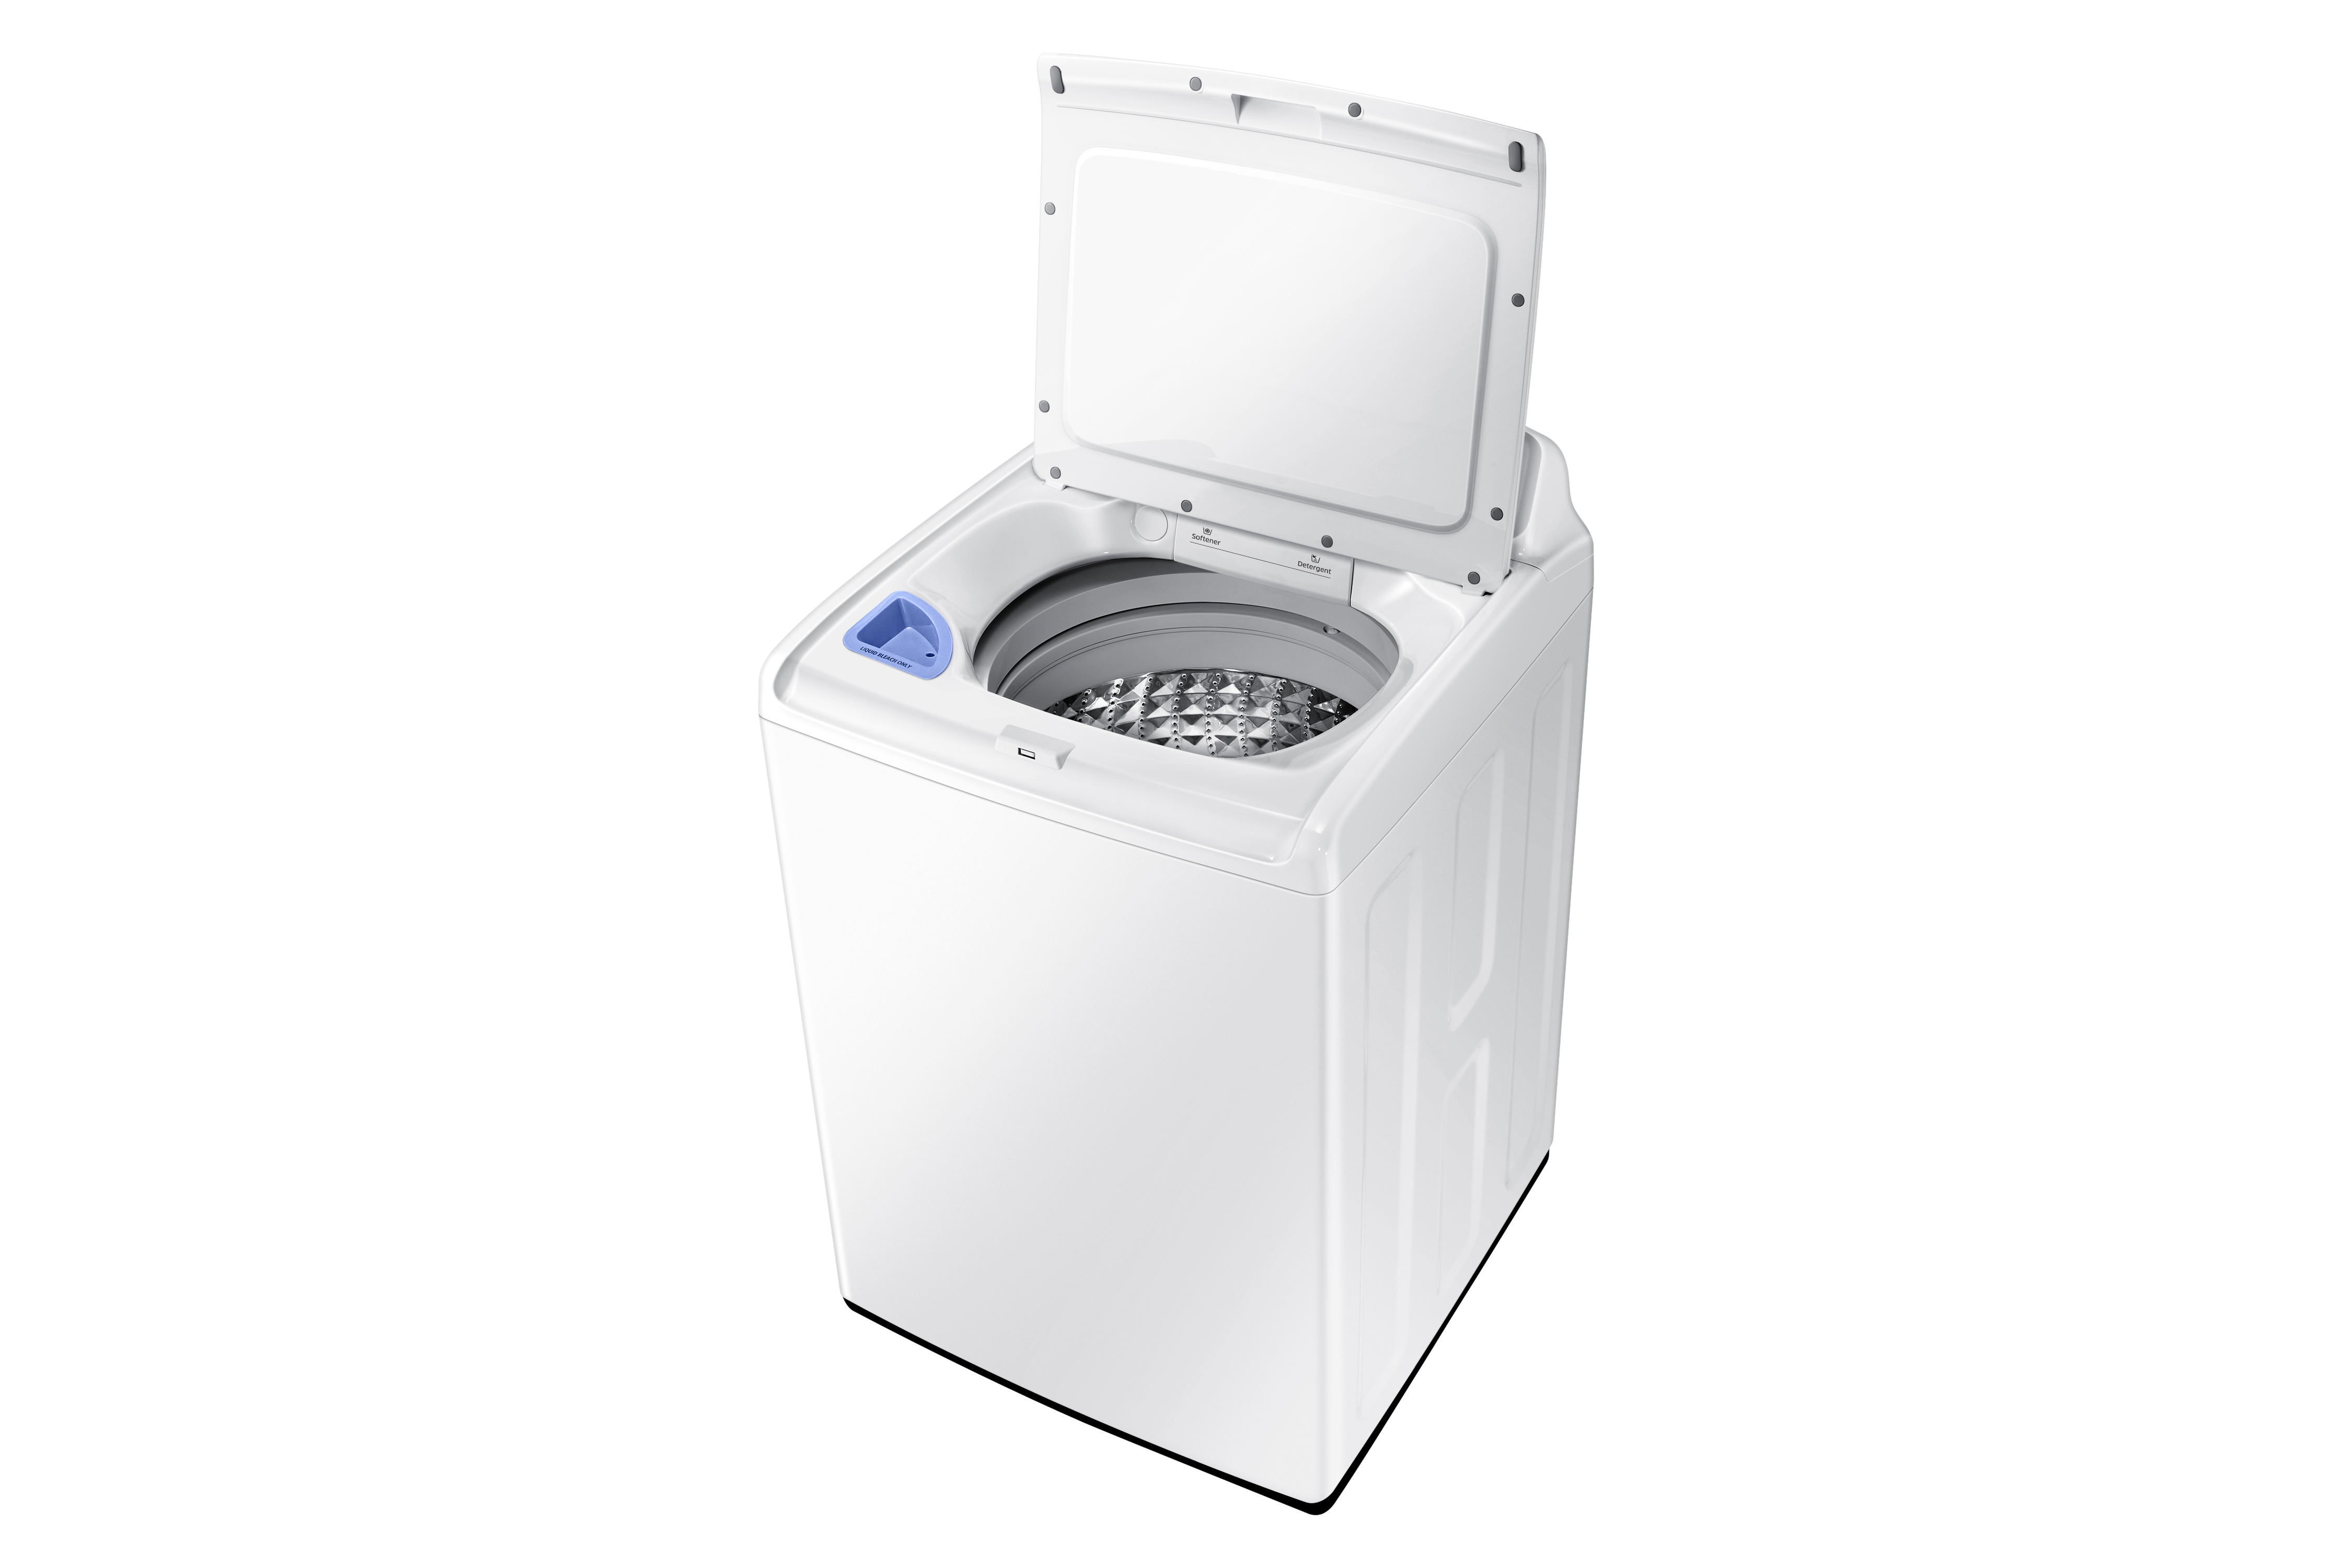 Samsung WA40J3000AW 4.0 cu. ft. Top-Load Washer - White